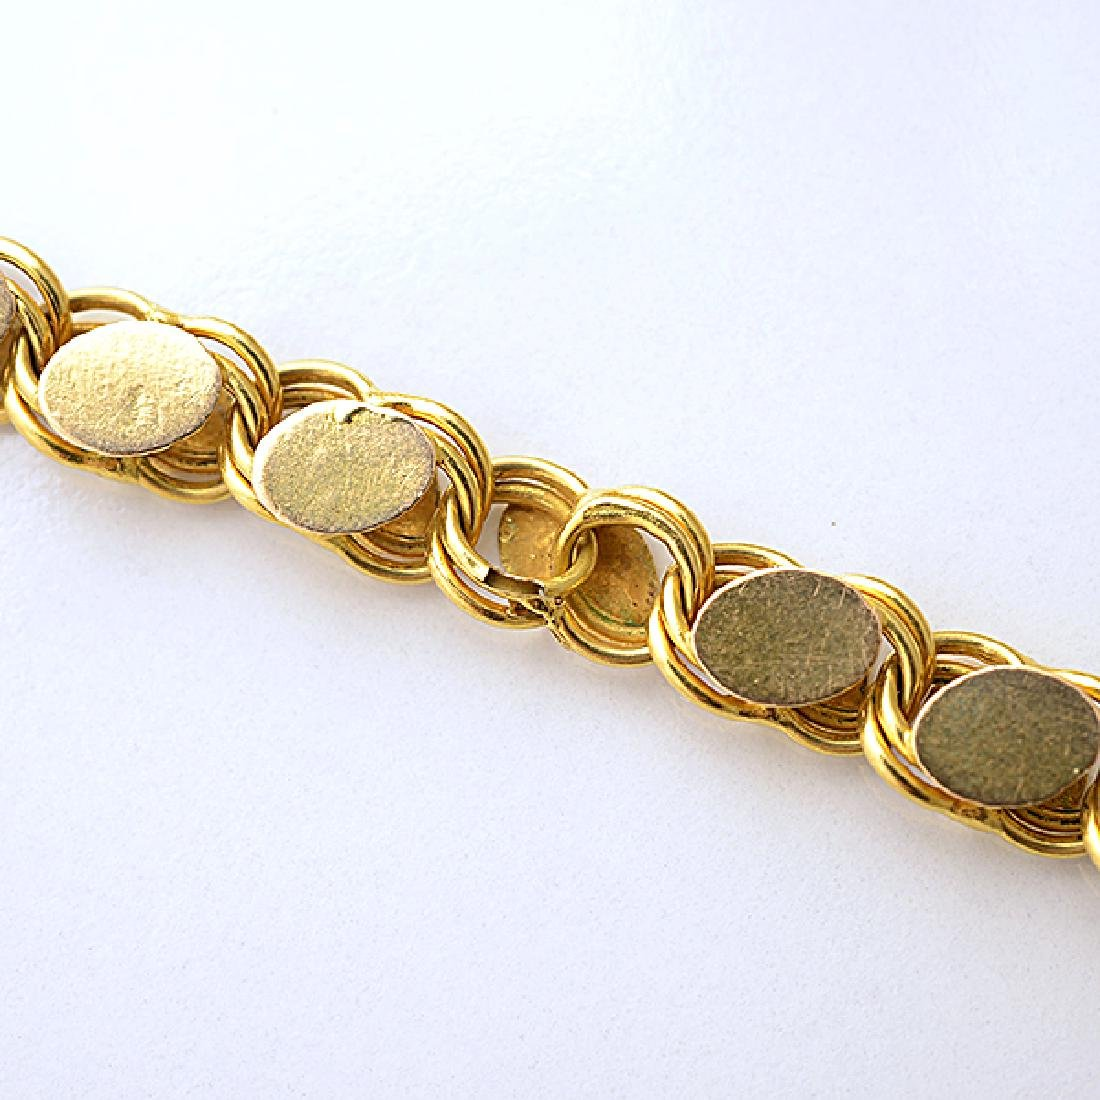 18k Yellow Gold Long Chain Necklace. - 6